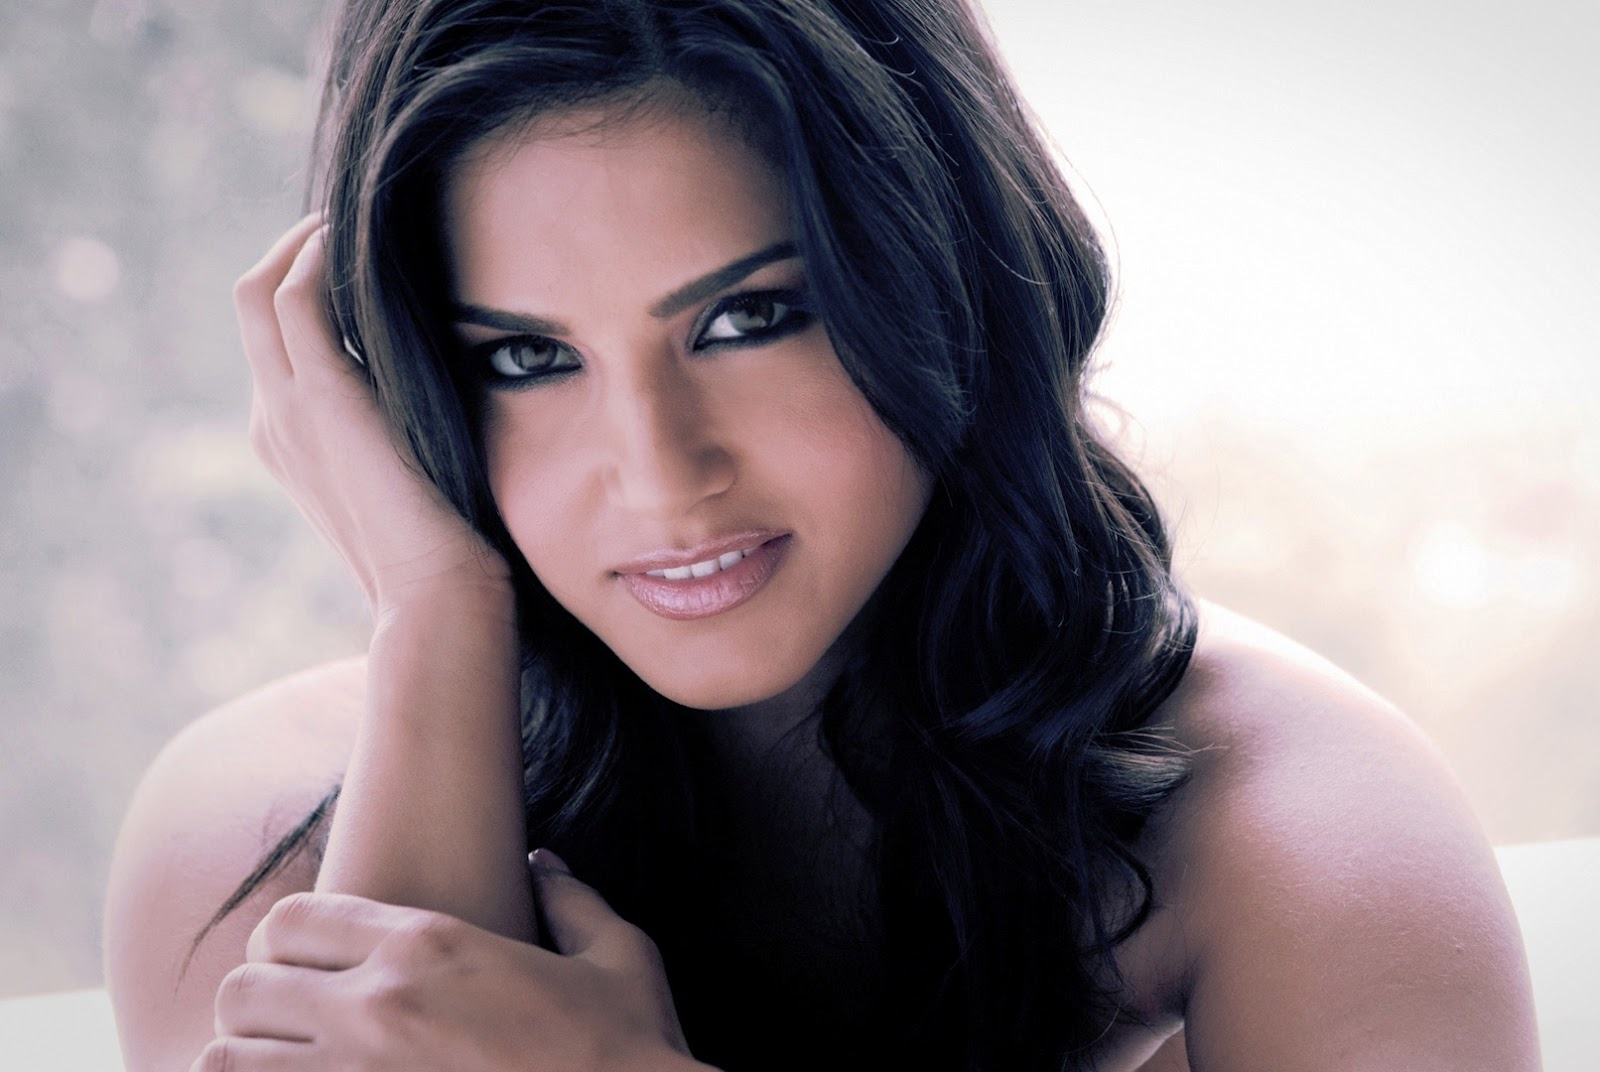 Sunny Leone Profile Hd Wallpaper Sexy Hot-4967